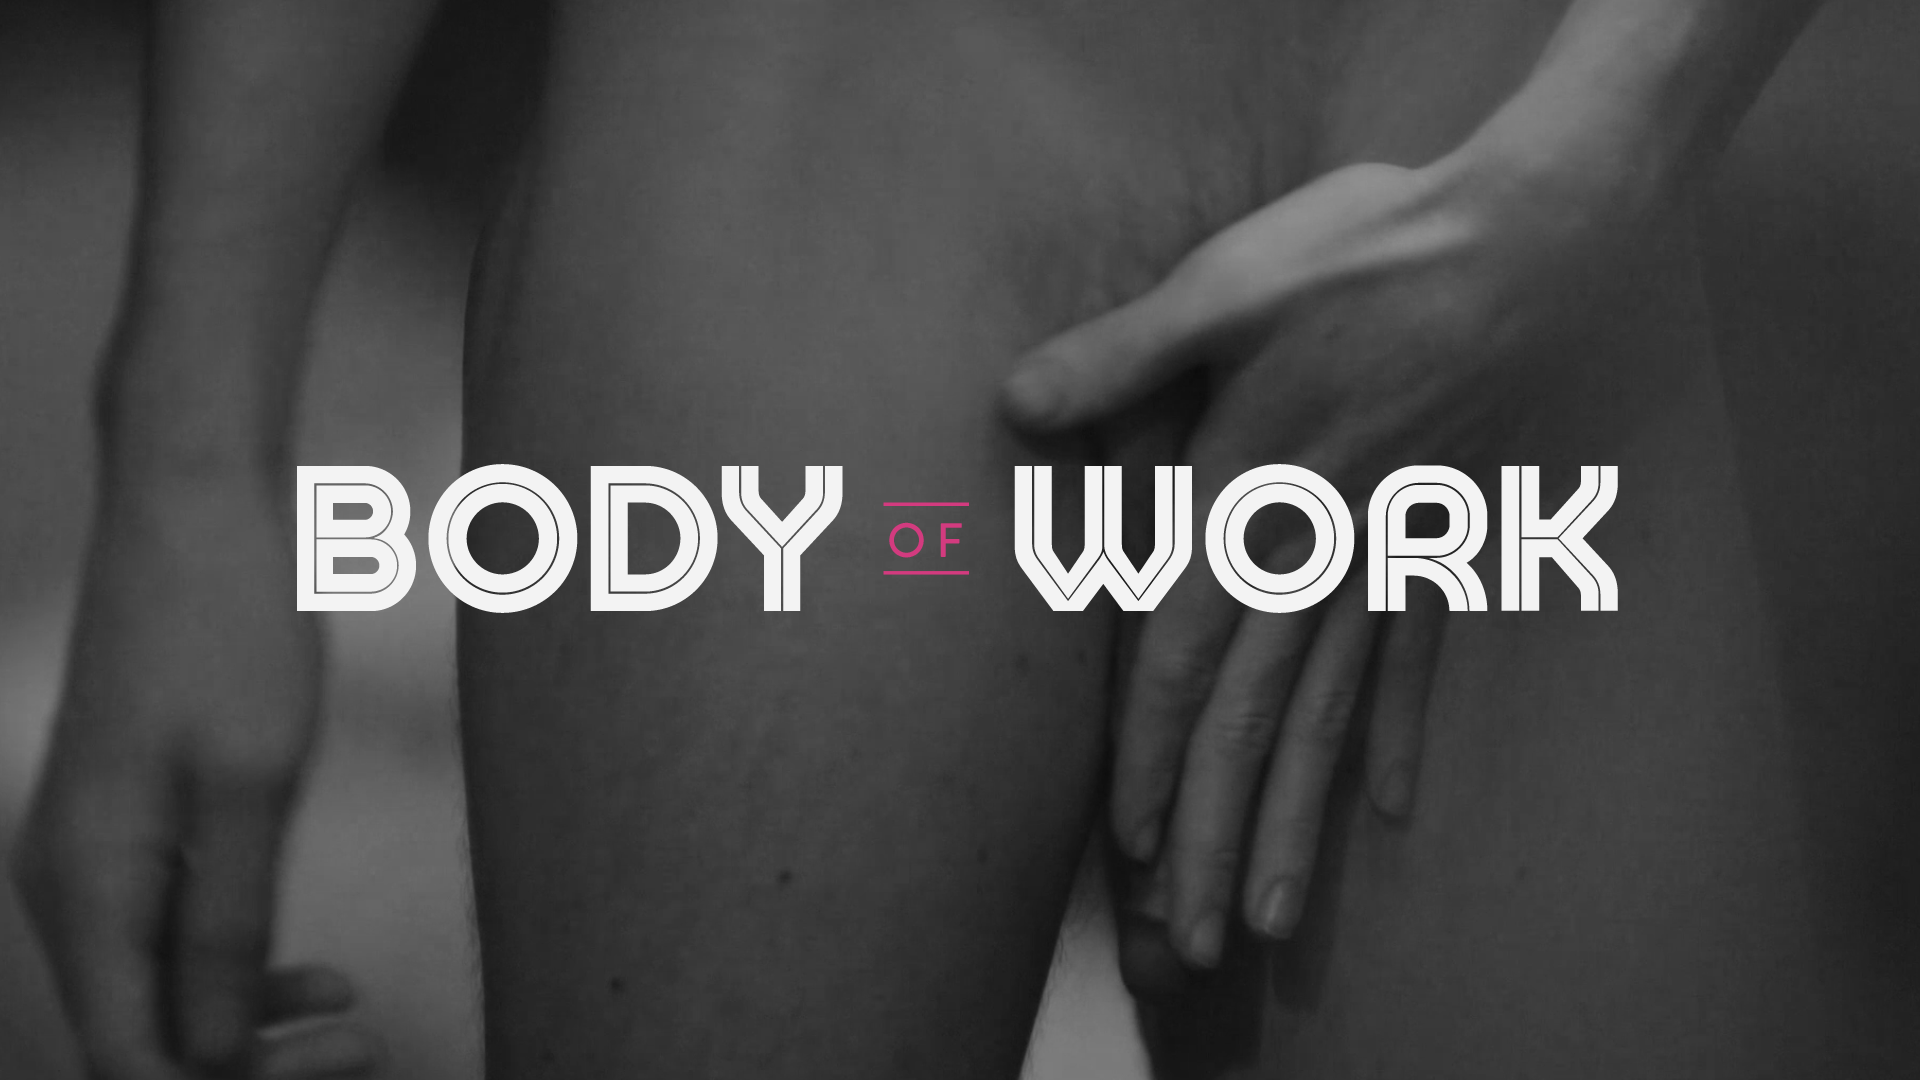 Bodyofwork actor 00 00 02 19 still001 nude preview image